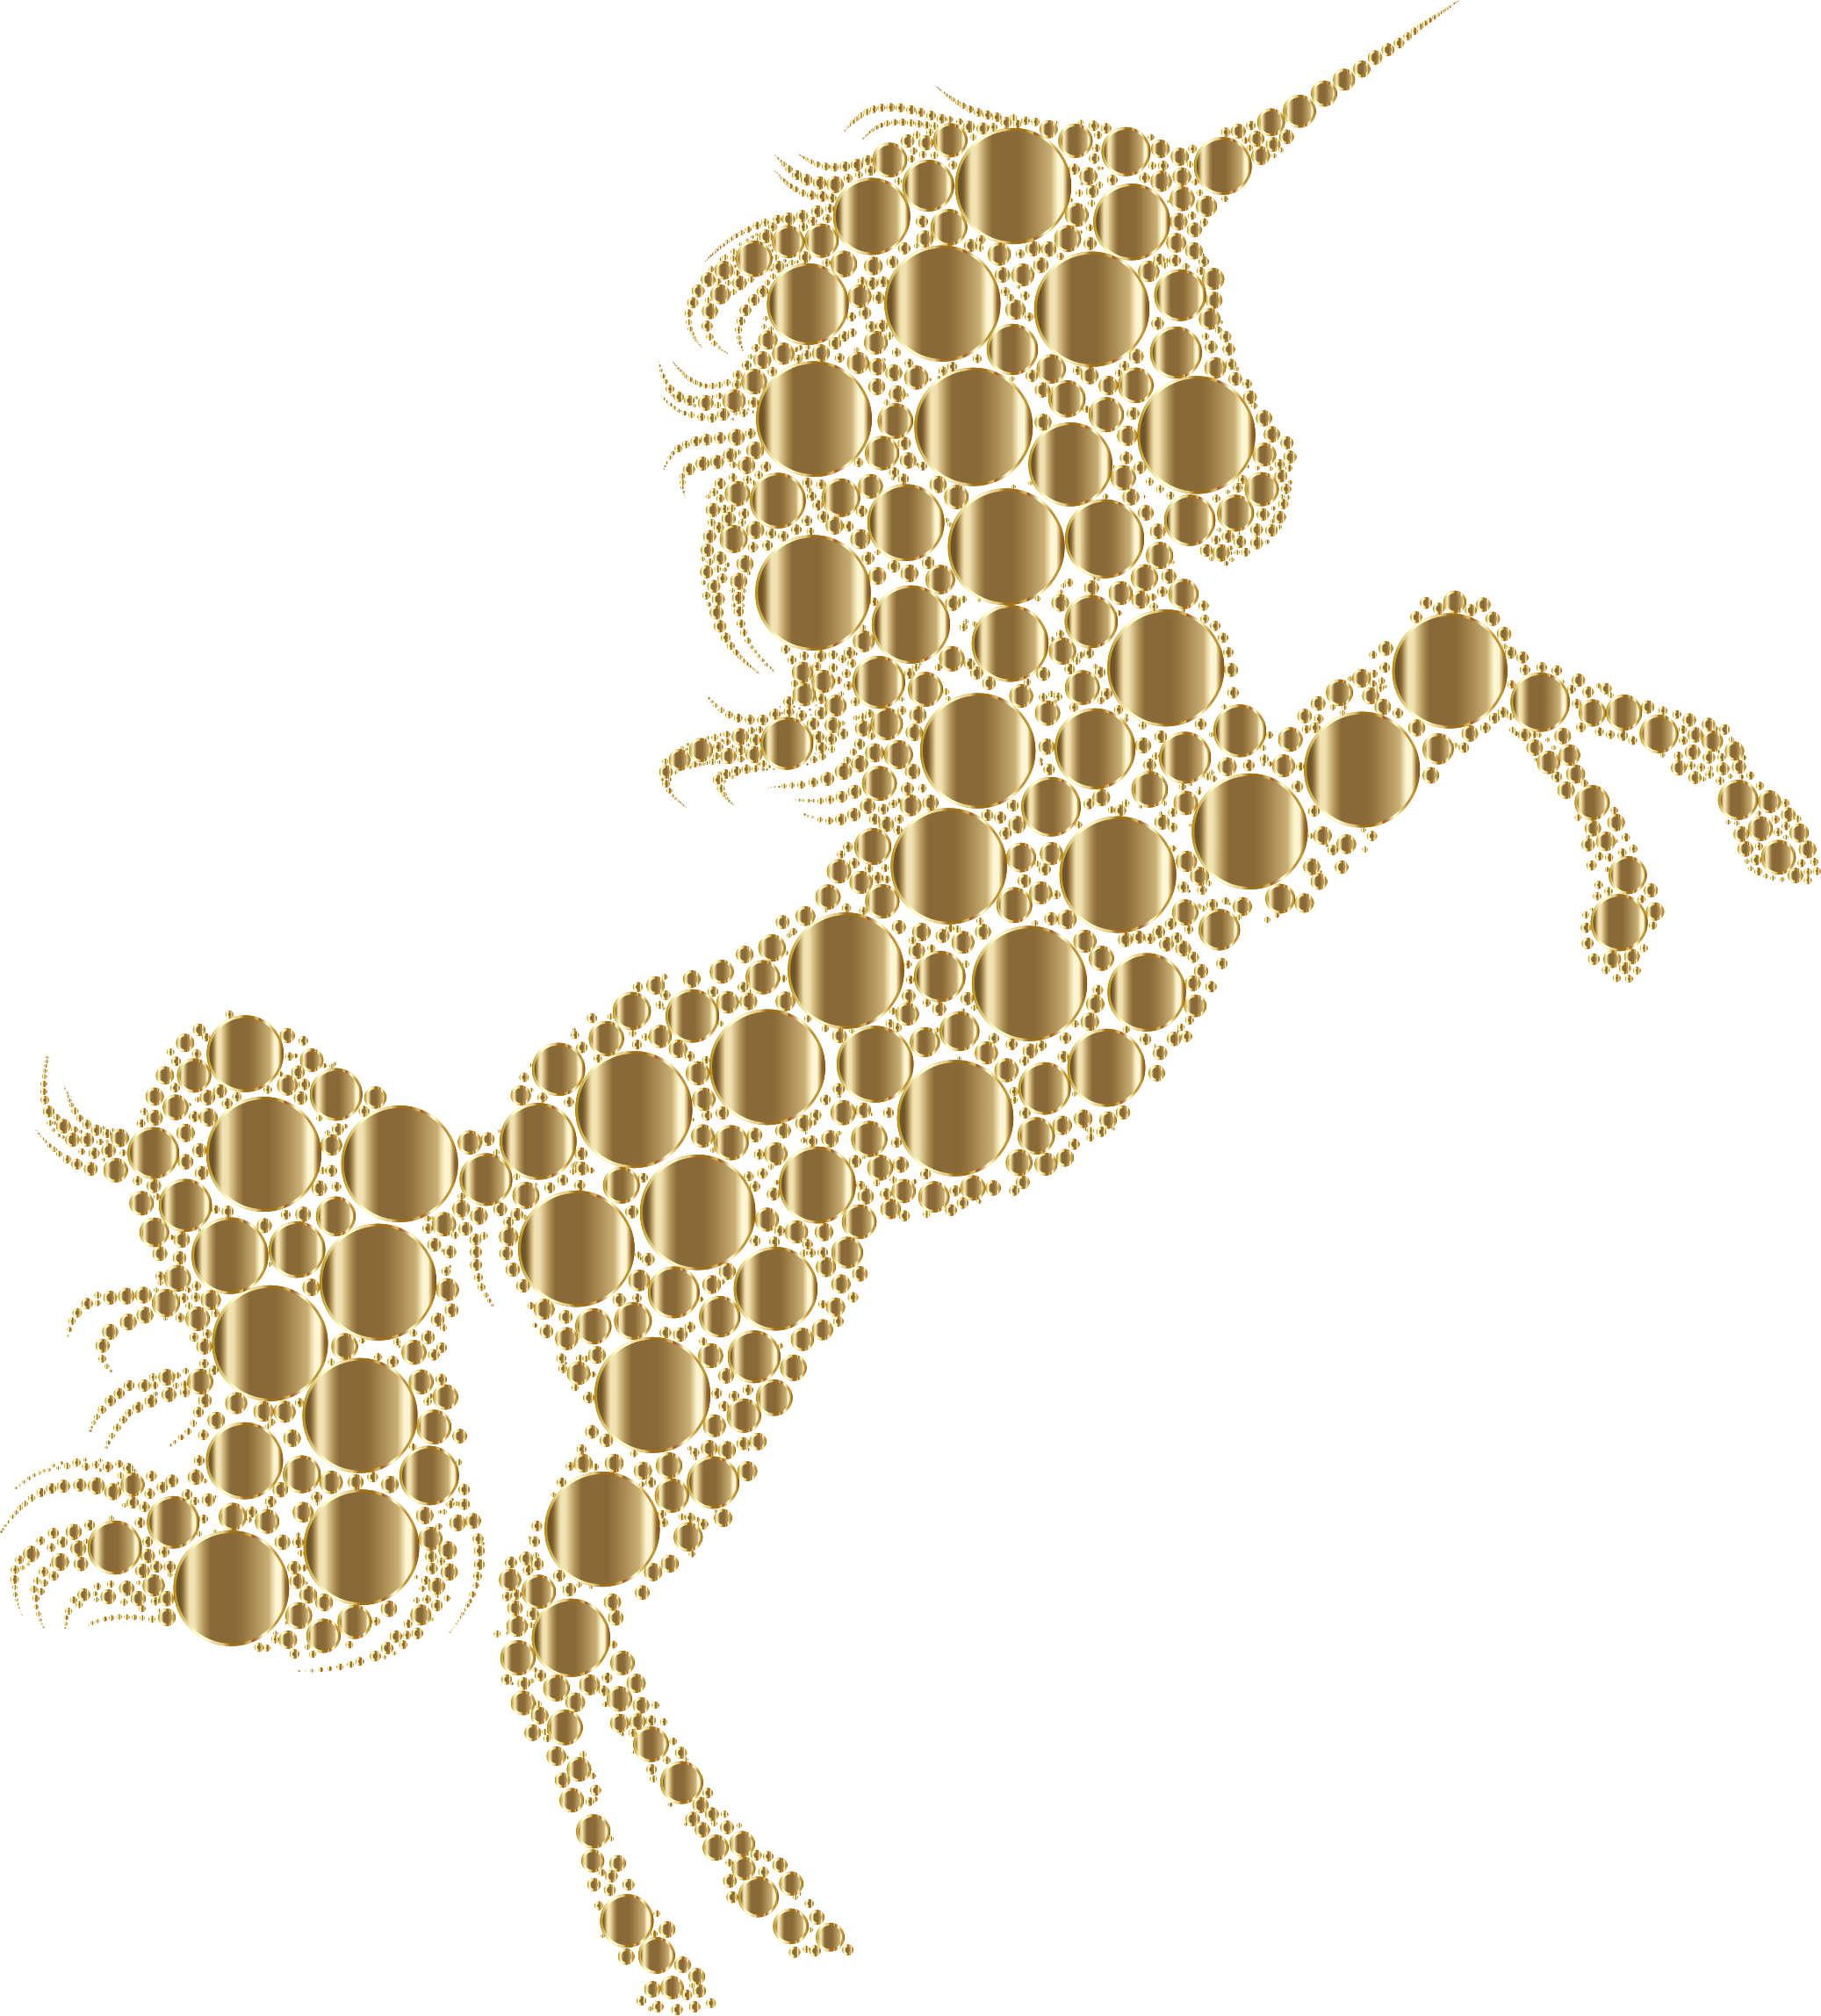 Gold Unicorn Silhouette 2 Circles No Background by GDJ